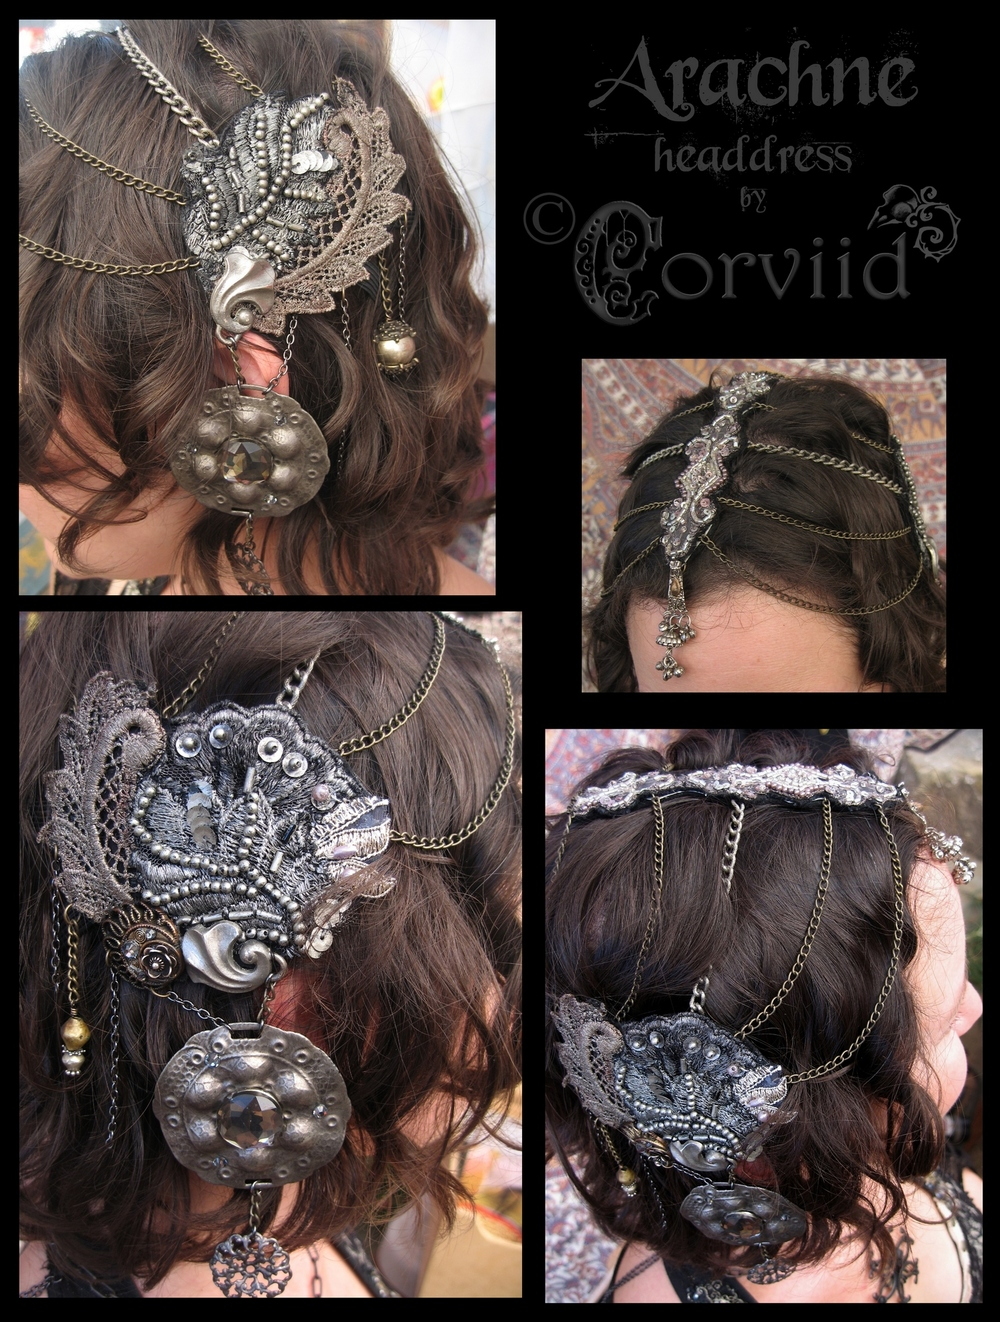 Arachne Headdress